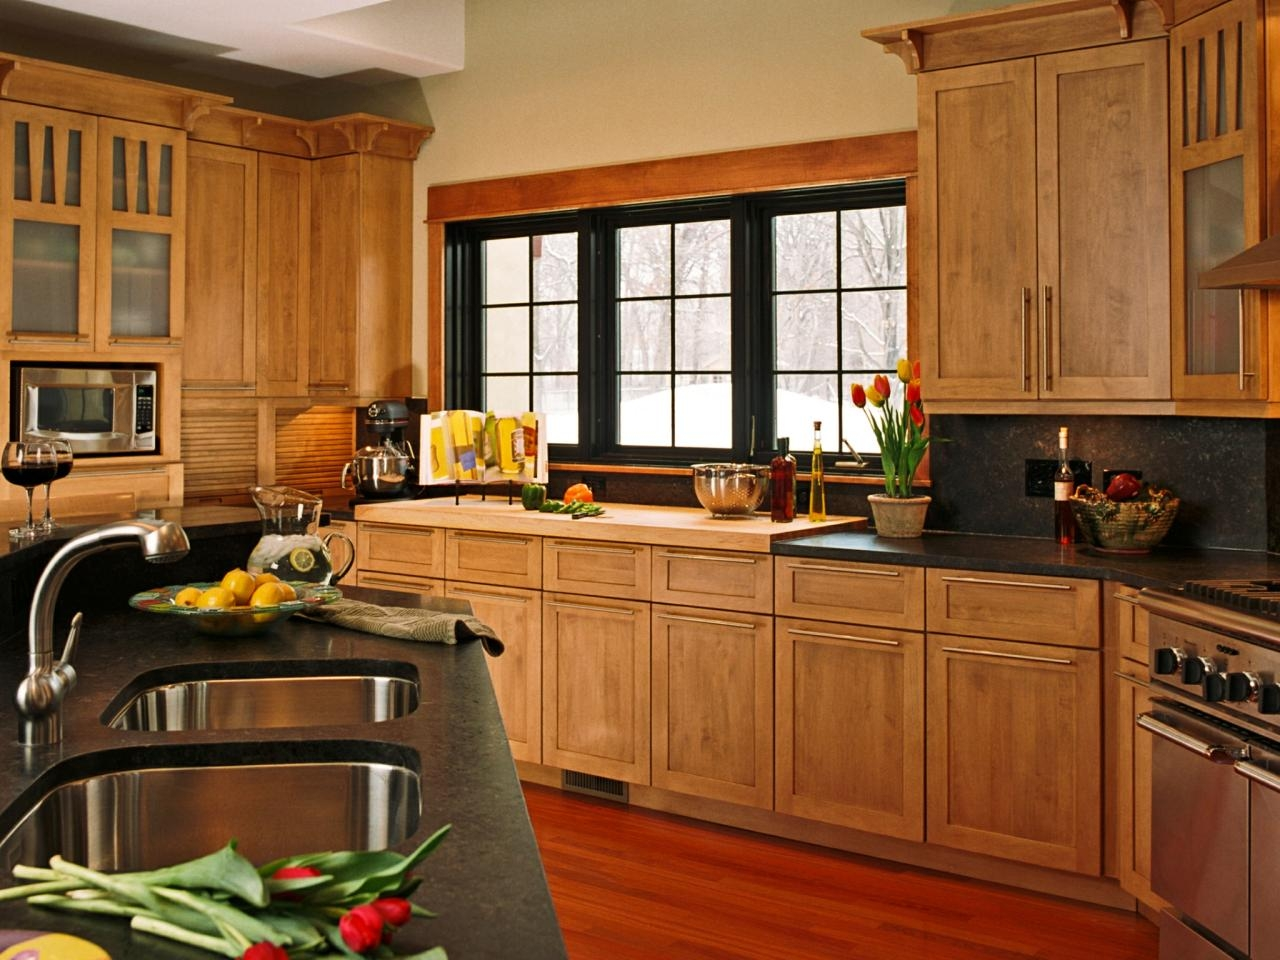 Styles Of Kitchen Cabinet Hardware